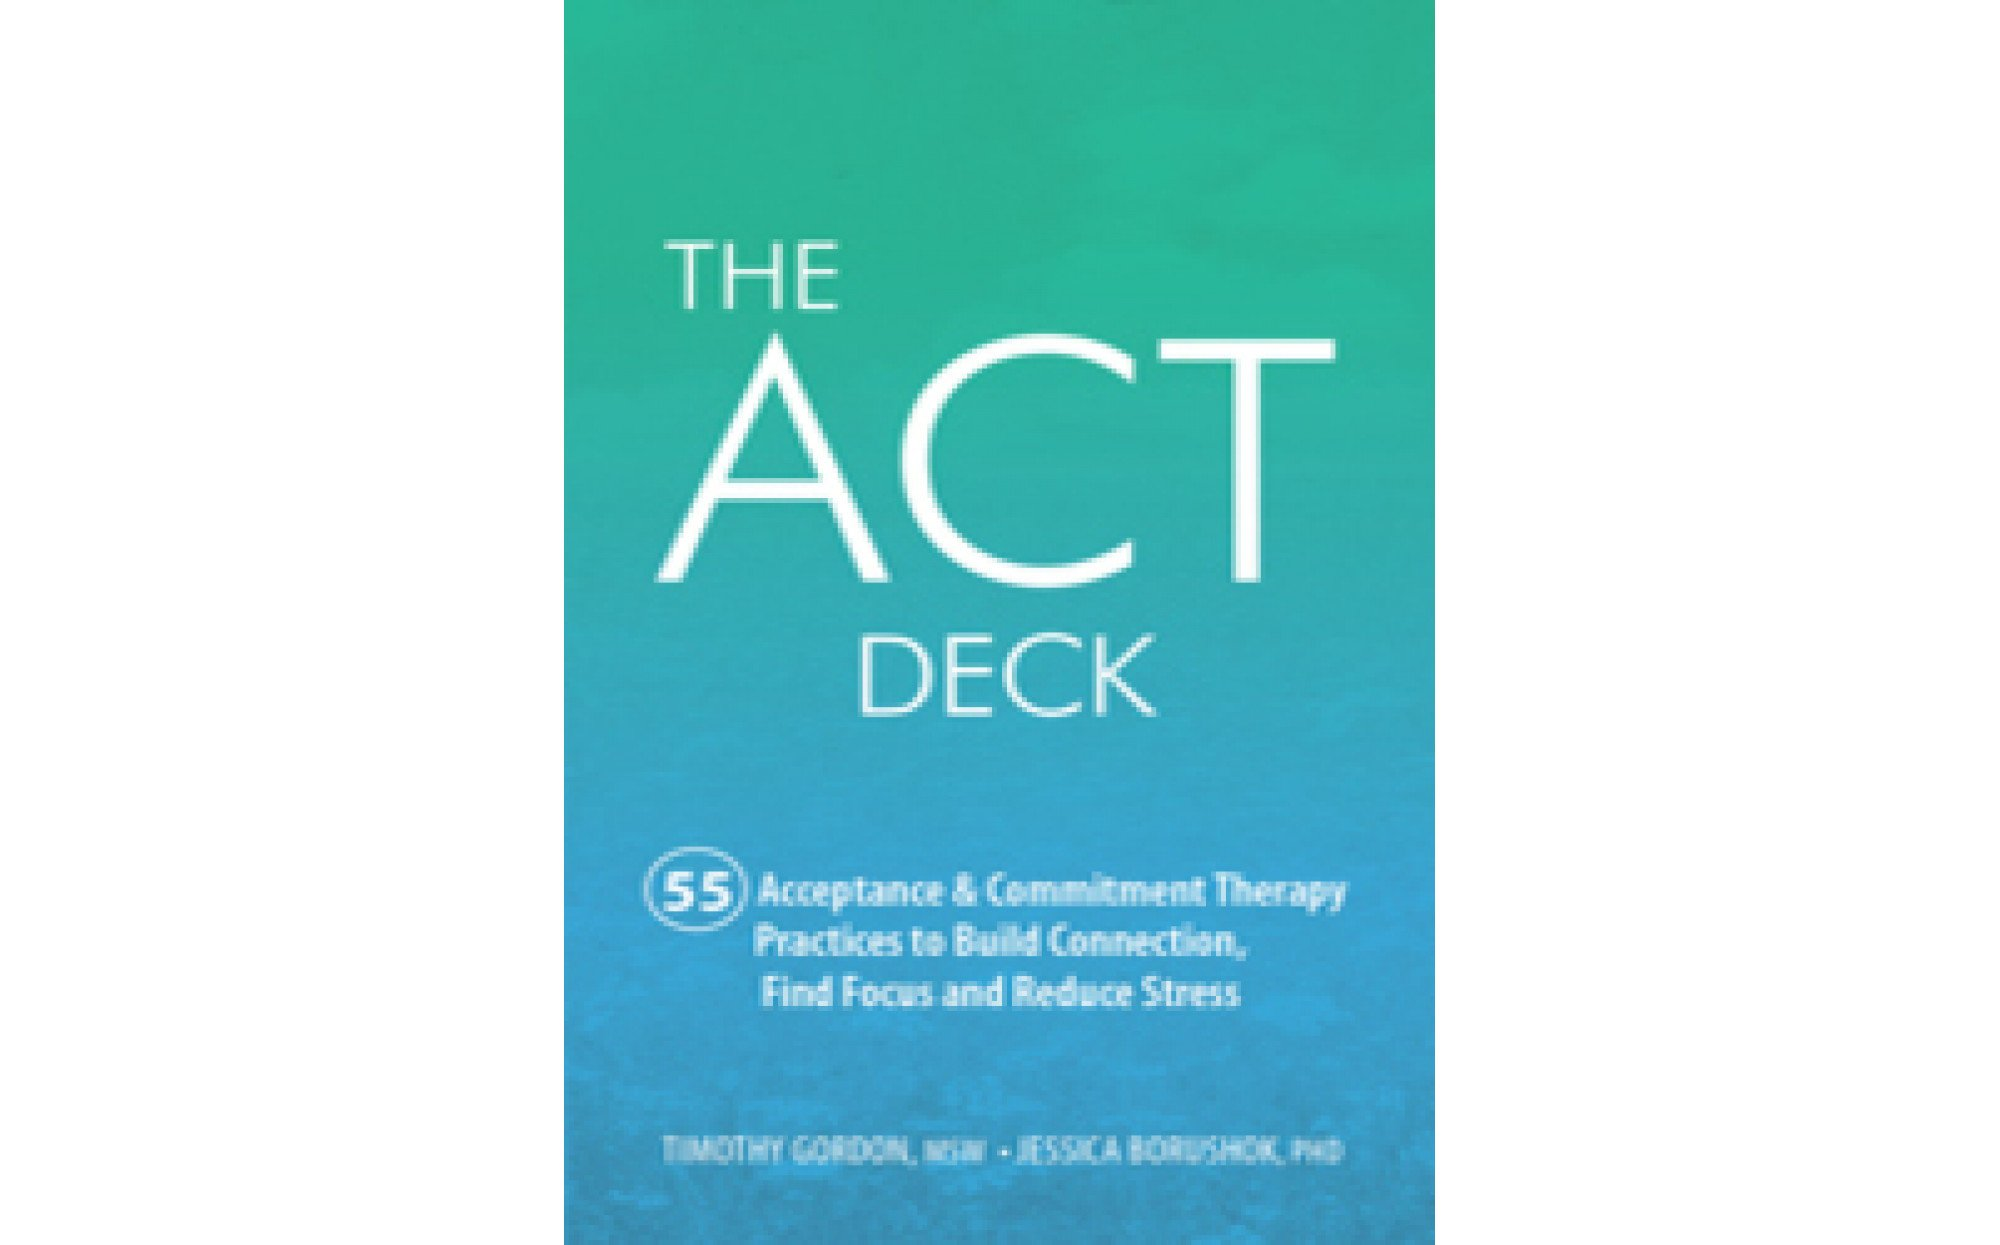 The ACT Deck 55 Acceptance Commitment Therapy Practices